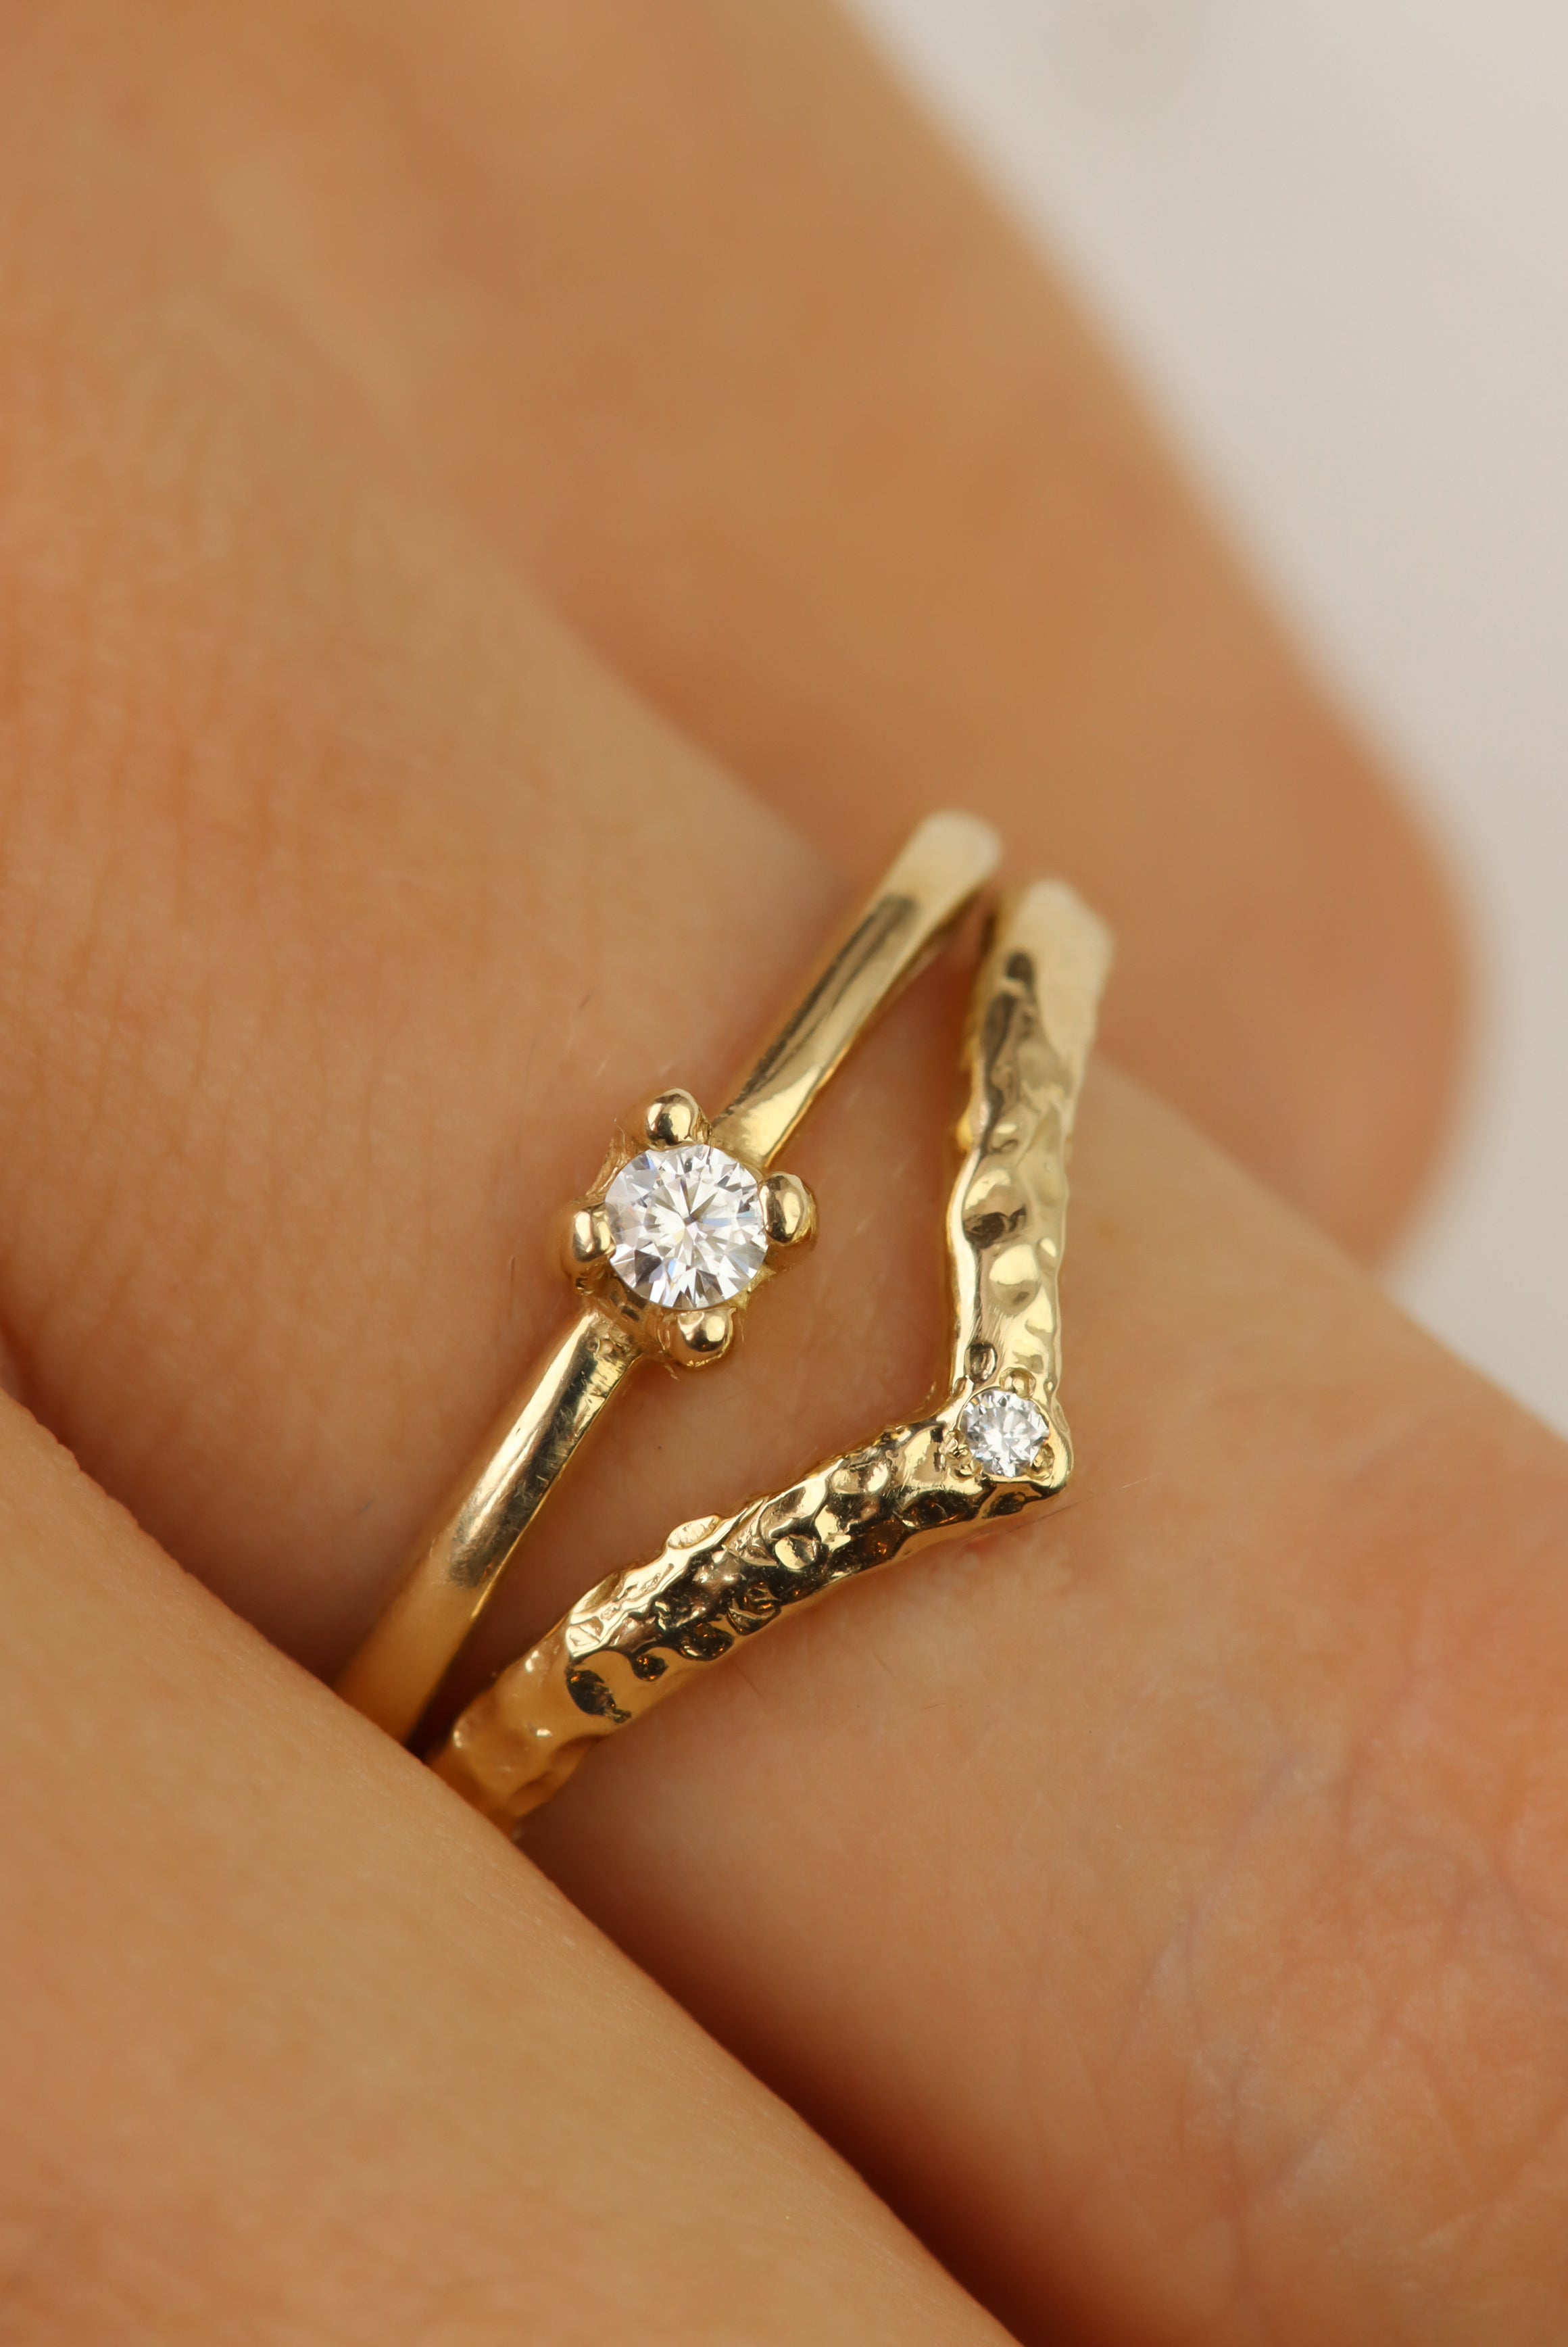 combat-dull-style-with-unique-diamond-stacking-rings-solid-gold-diamond-chevron-stacking-ring